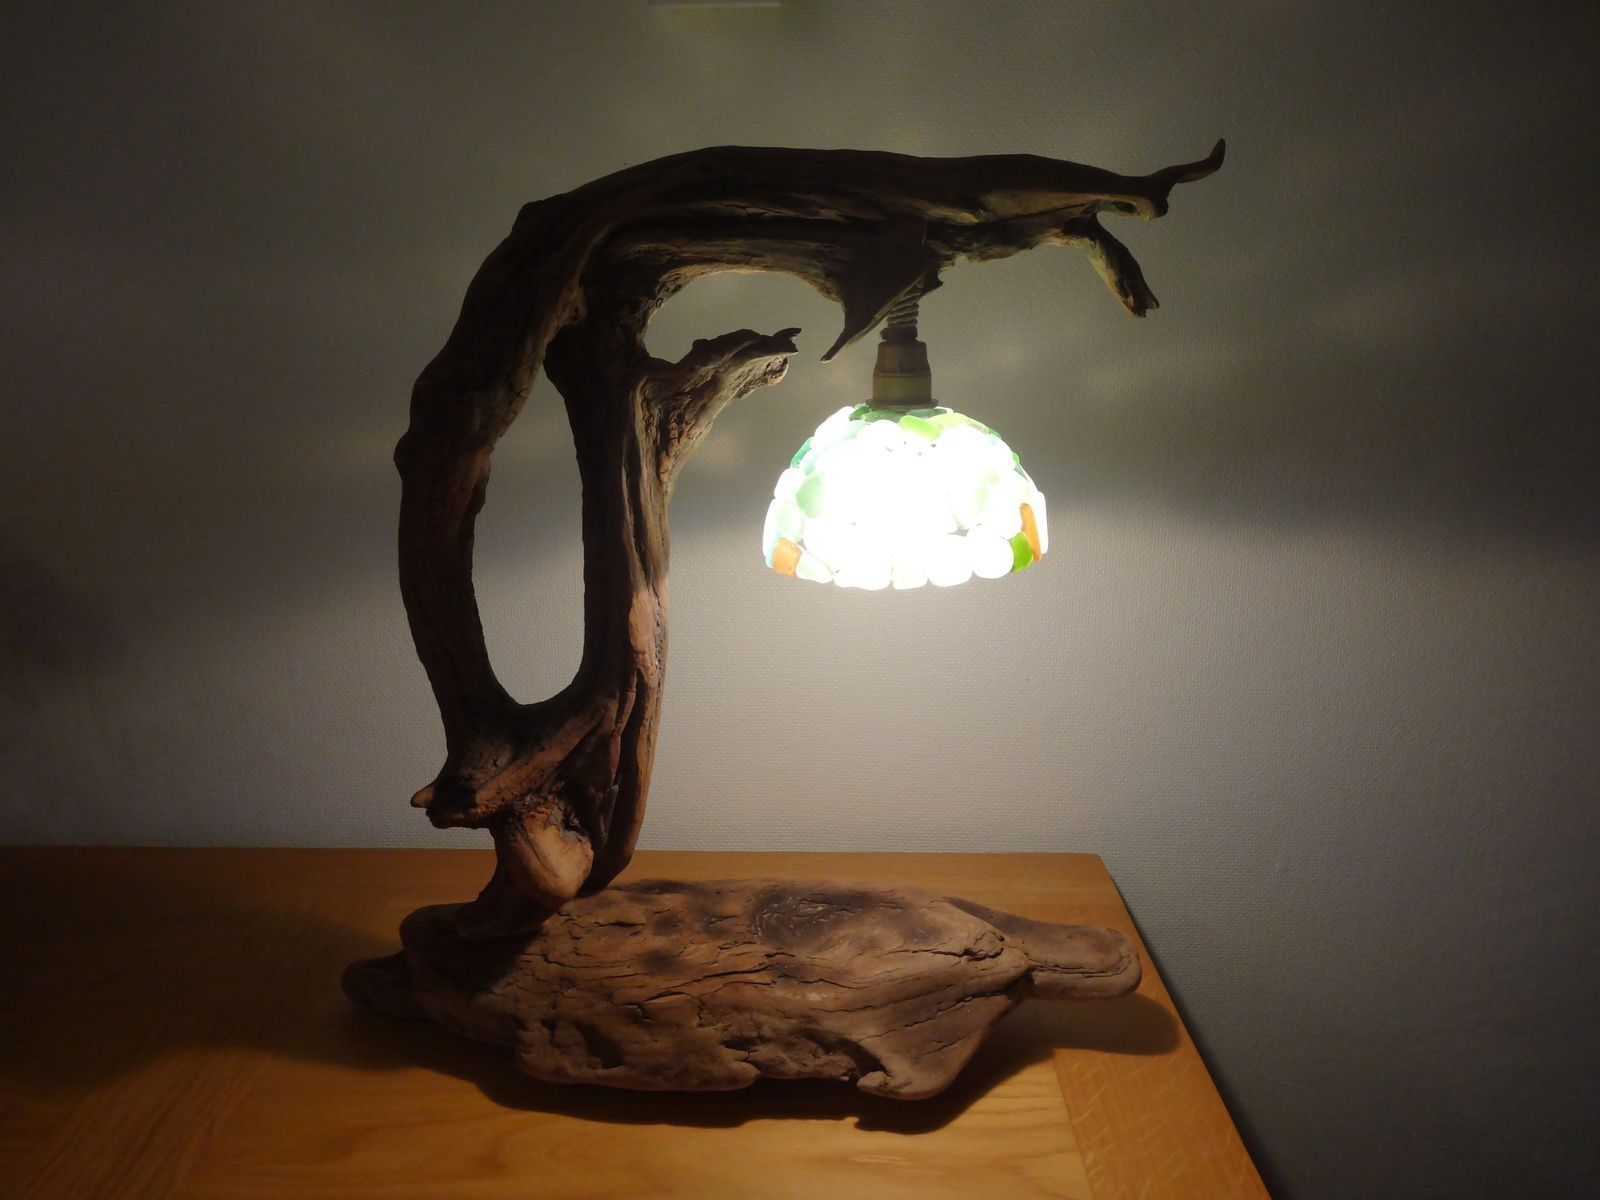 Le blog de oboisdormant bois flott cr ations en bois flott for Lampe en bois flotte creation